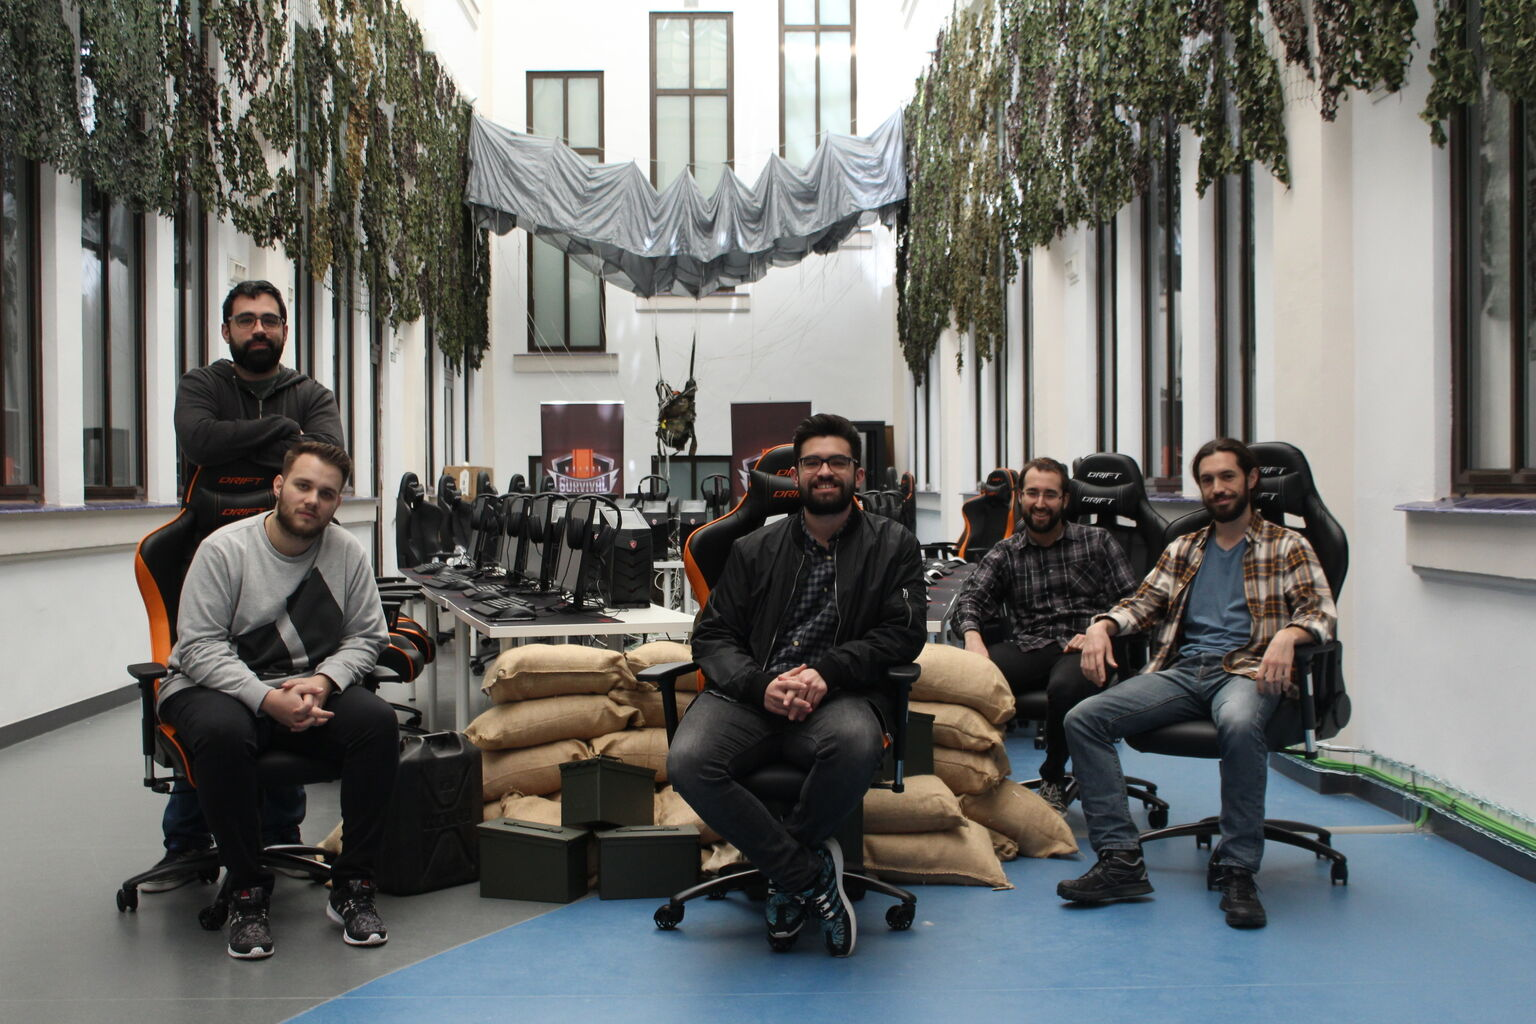 Málaga celebra la primera liga de 'League of Legends' presencial de España